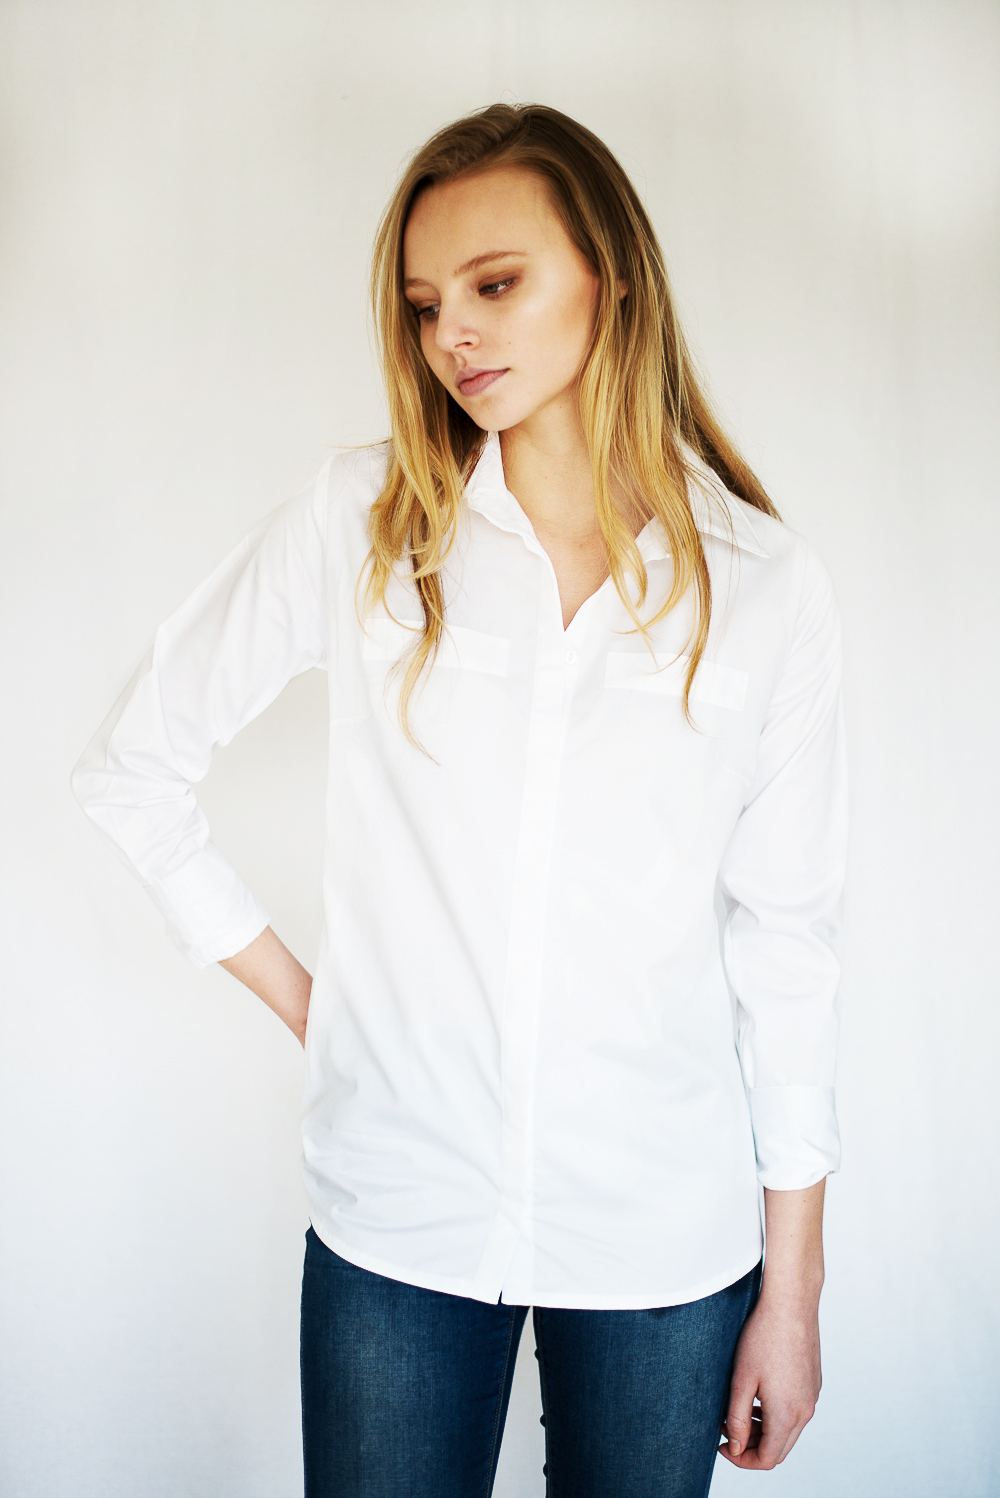 Tom Lane SS'16 White Shirts Lookbook